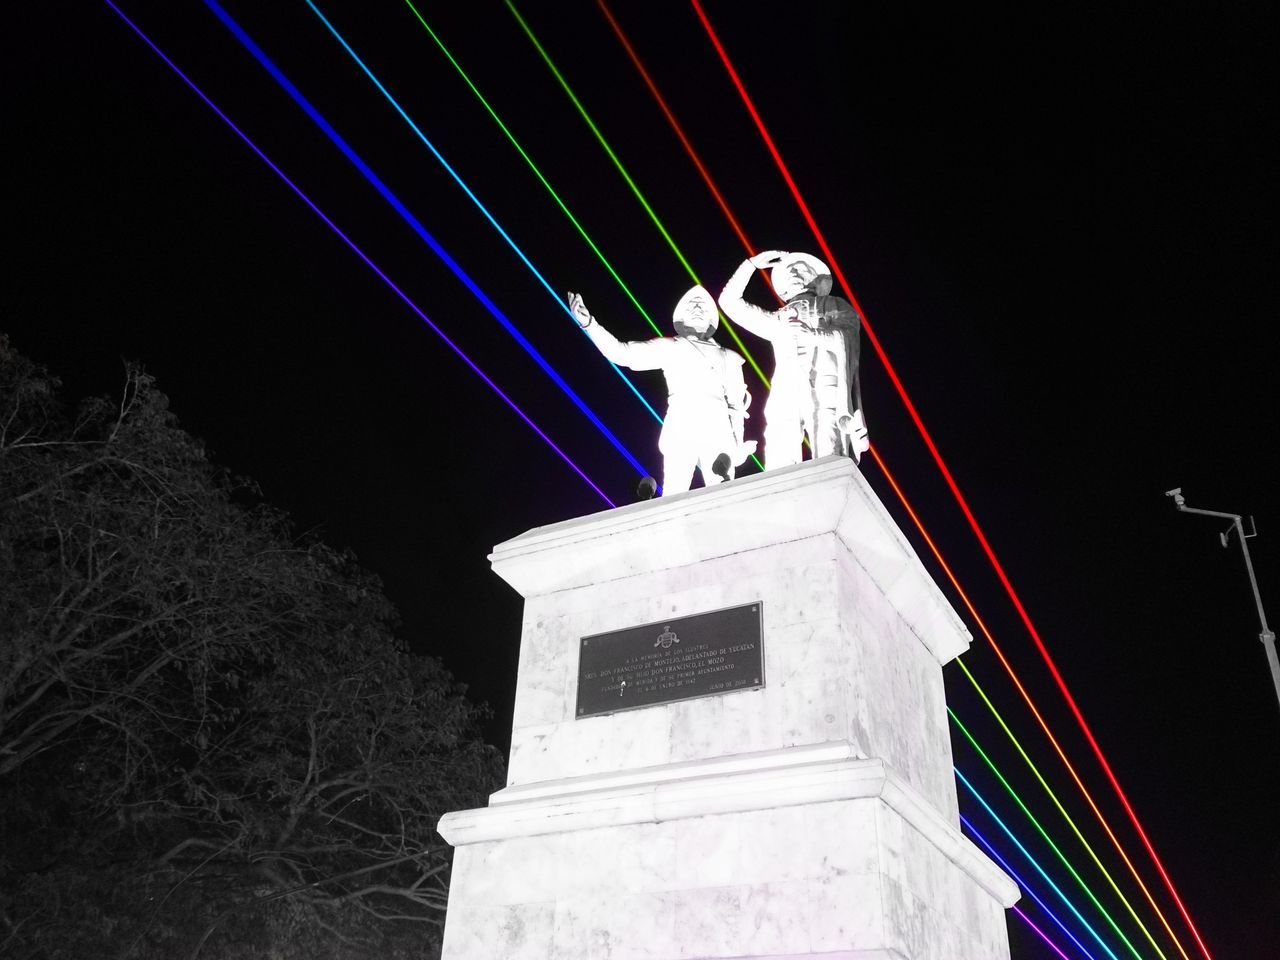 Can you see the rainbow? Mérida Yucatán Xperia ZL Street Photography Mobile Photography Outdoors Urban Photography Yucatan Mexico Merida♡ City Life Night Photography Laser-Art Colors Lights Filux Mexico 2017 Paseo Montejo No People Landscape Statues/sculptures Rainbow Colors Statues And Monuments Welcome To Black